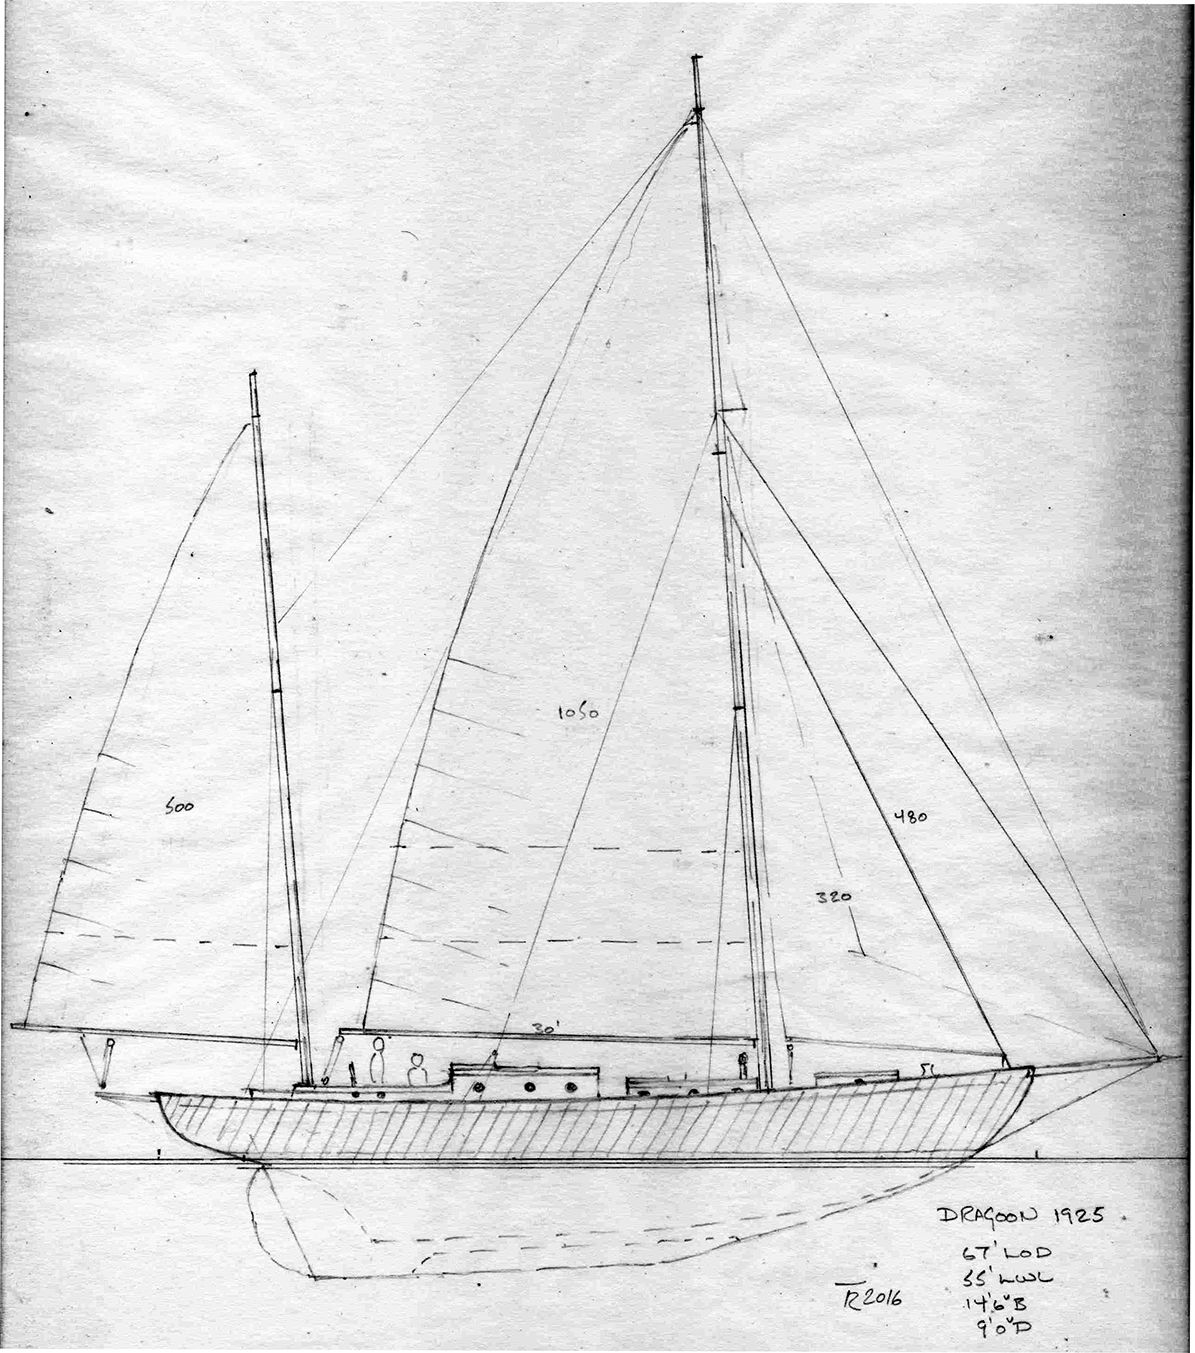 Sketch Sailplan of Dragoon re-created by Tad Roberts